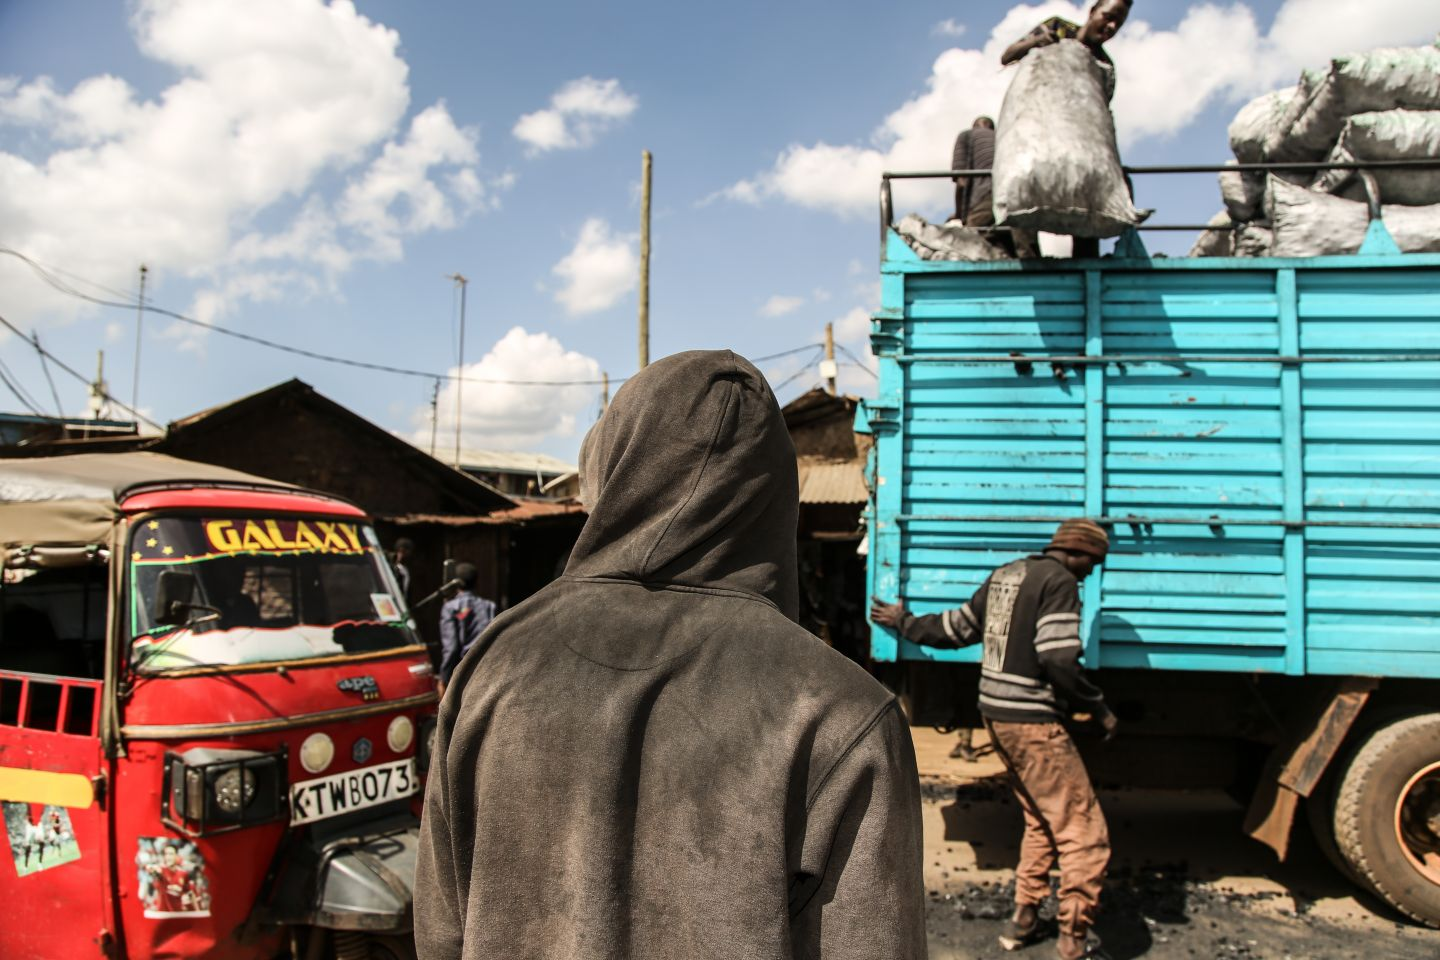 Life on  a day in Kibera, Africa's largest slum – photo report